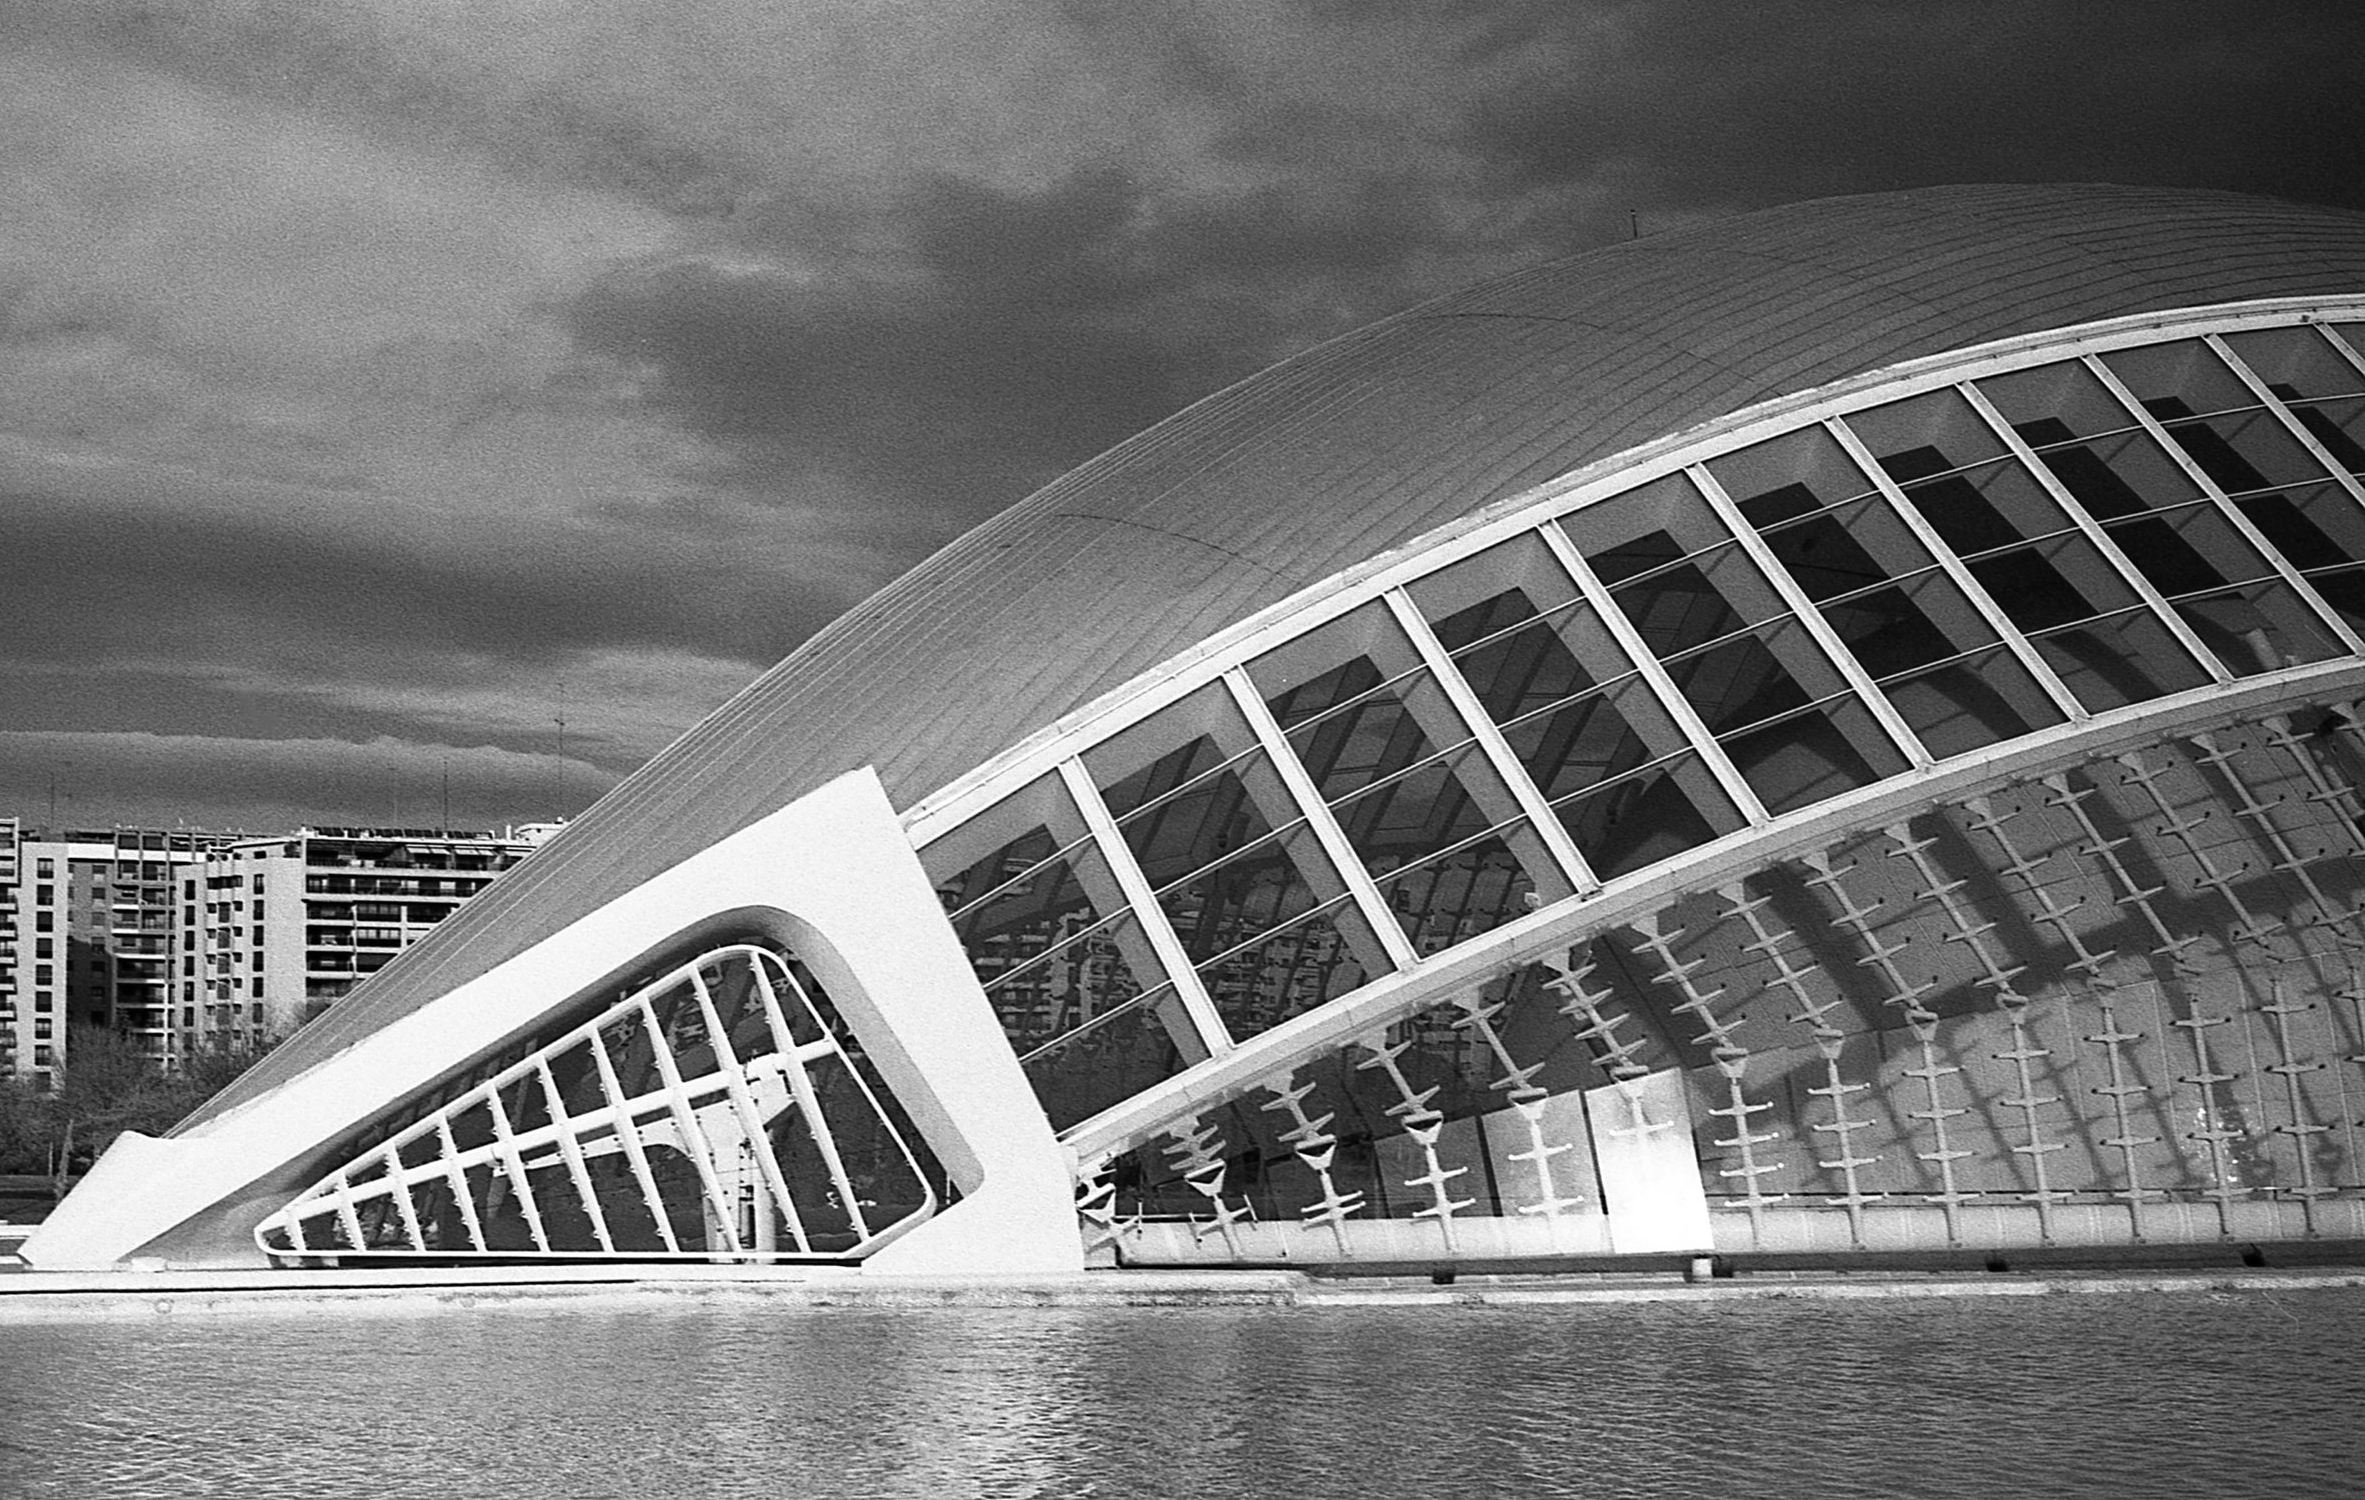 City of Arts and Sciences, L'Hemisfèric, Valencia, Nikon F3, Rollei Retro 400S